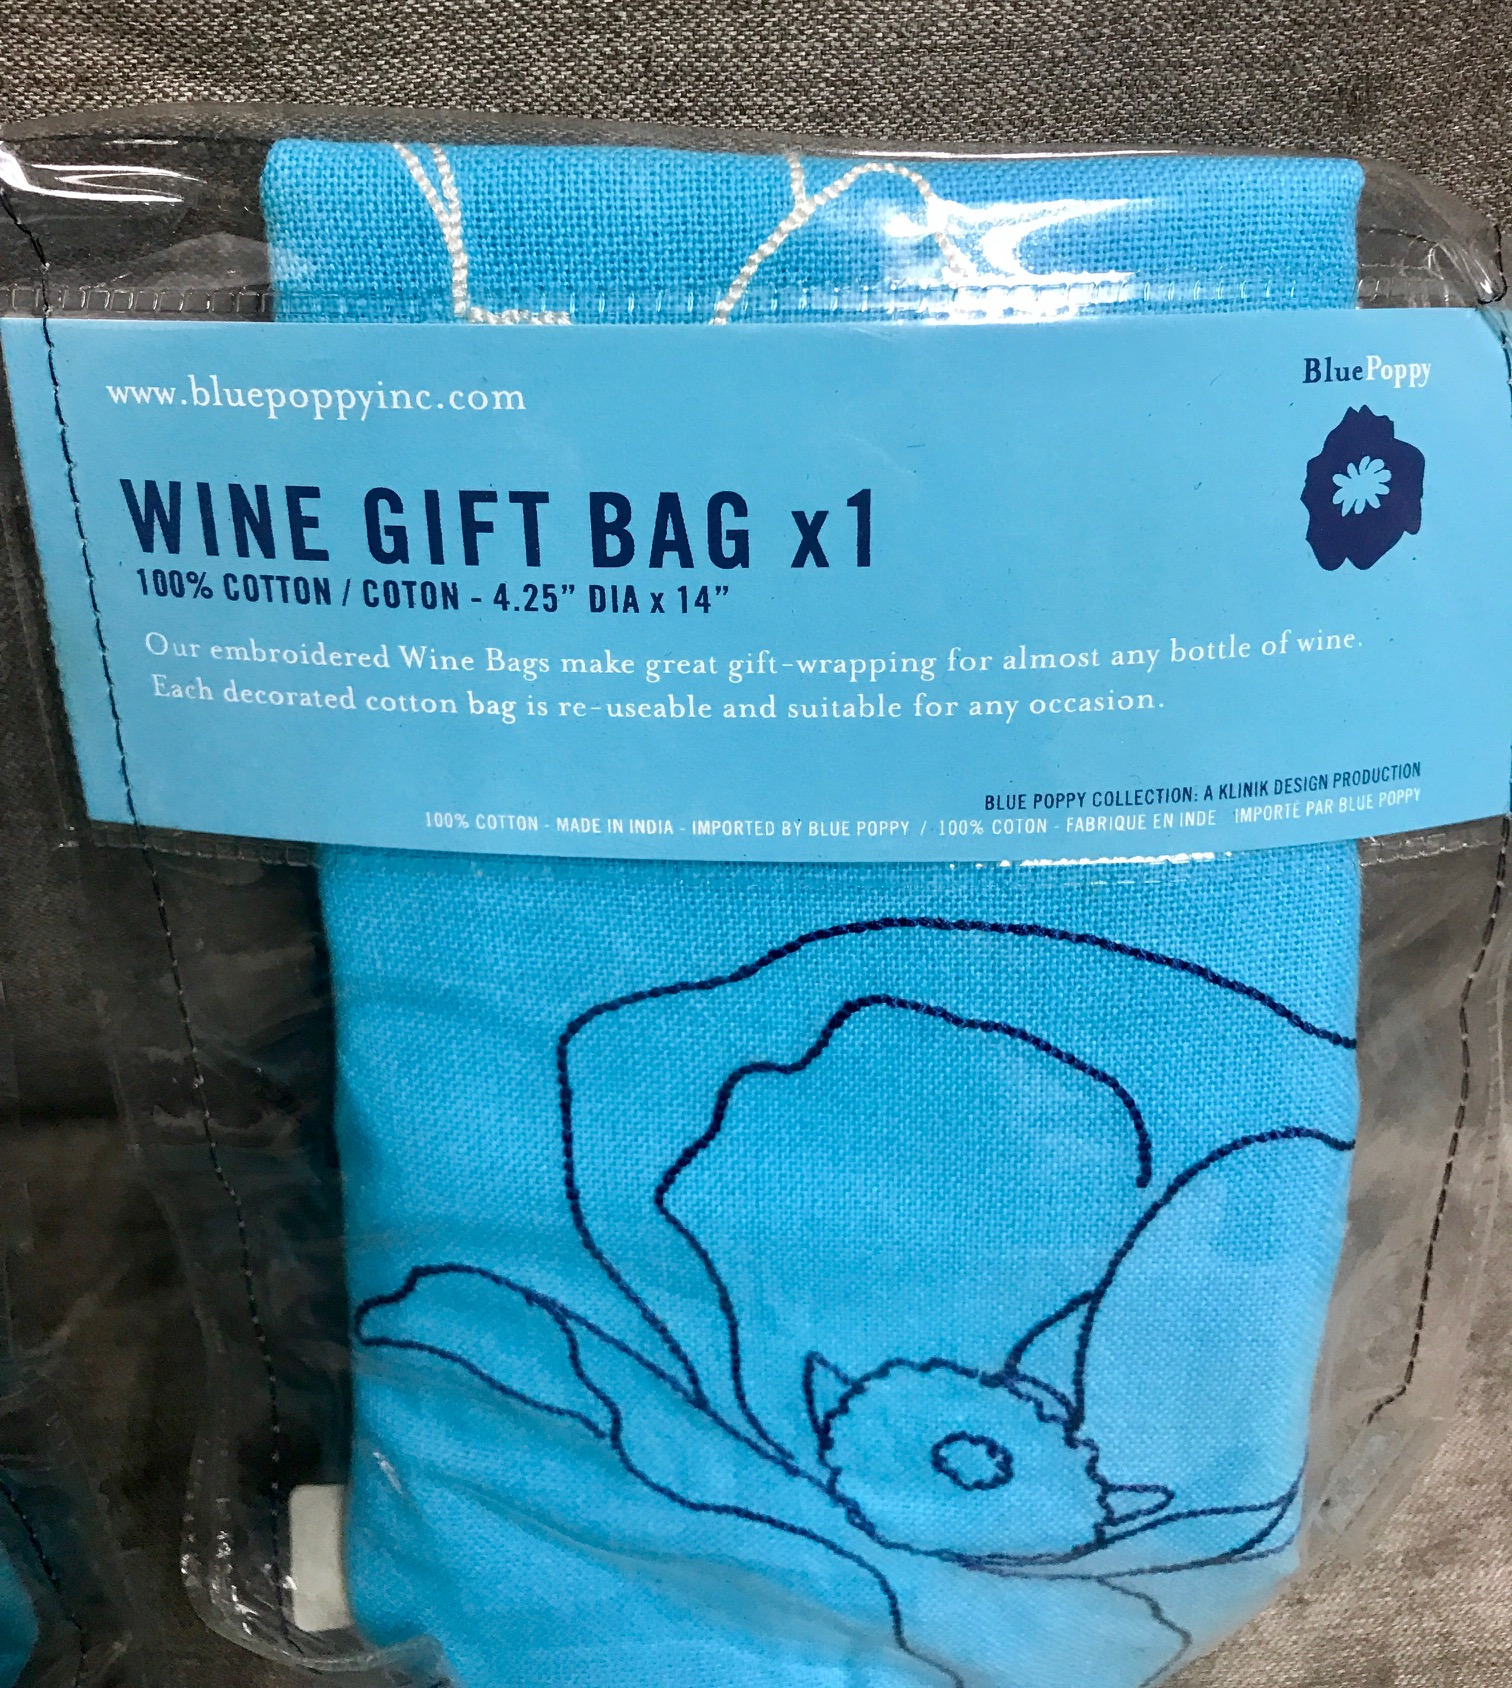 Lot of 3 Emroided Wine Gift Bags 100% Cotton Blue Poppy